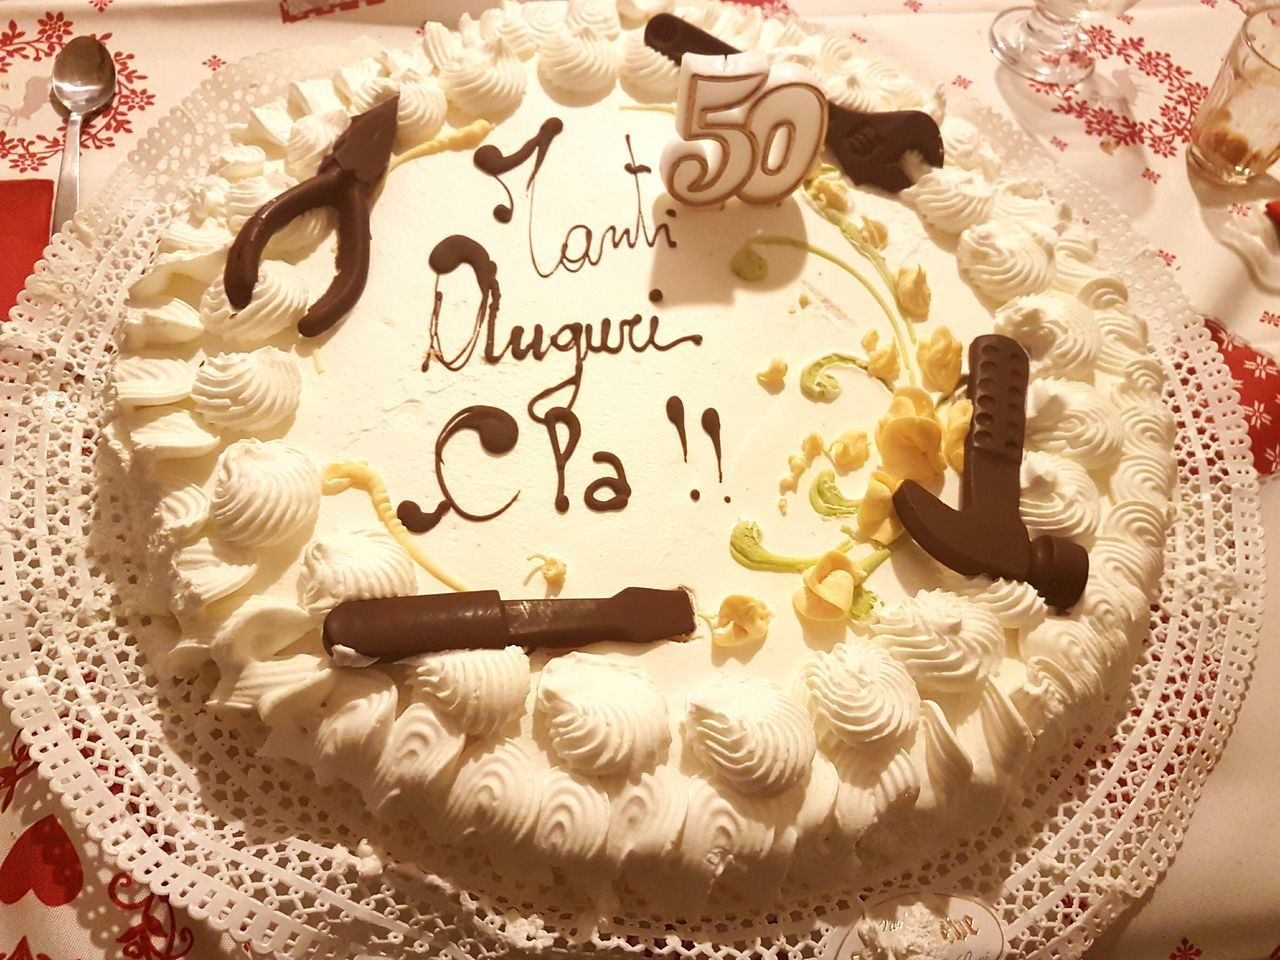 Text Close-up No People Indoors  Handwriting  Day Simplicity Is Beauty. Express Yourself ❤ Novi Ligure Italy Birthday Cake 50 Years Old Chocolate Tools Yellow Flower Decoration Happy Birthday In Italian Italian Words